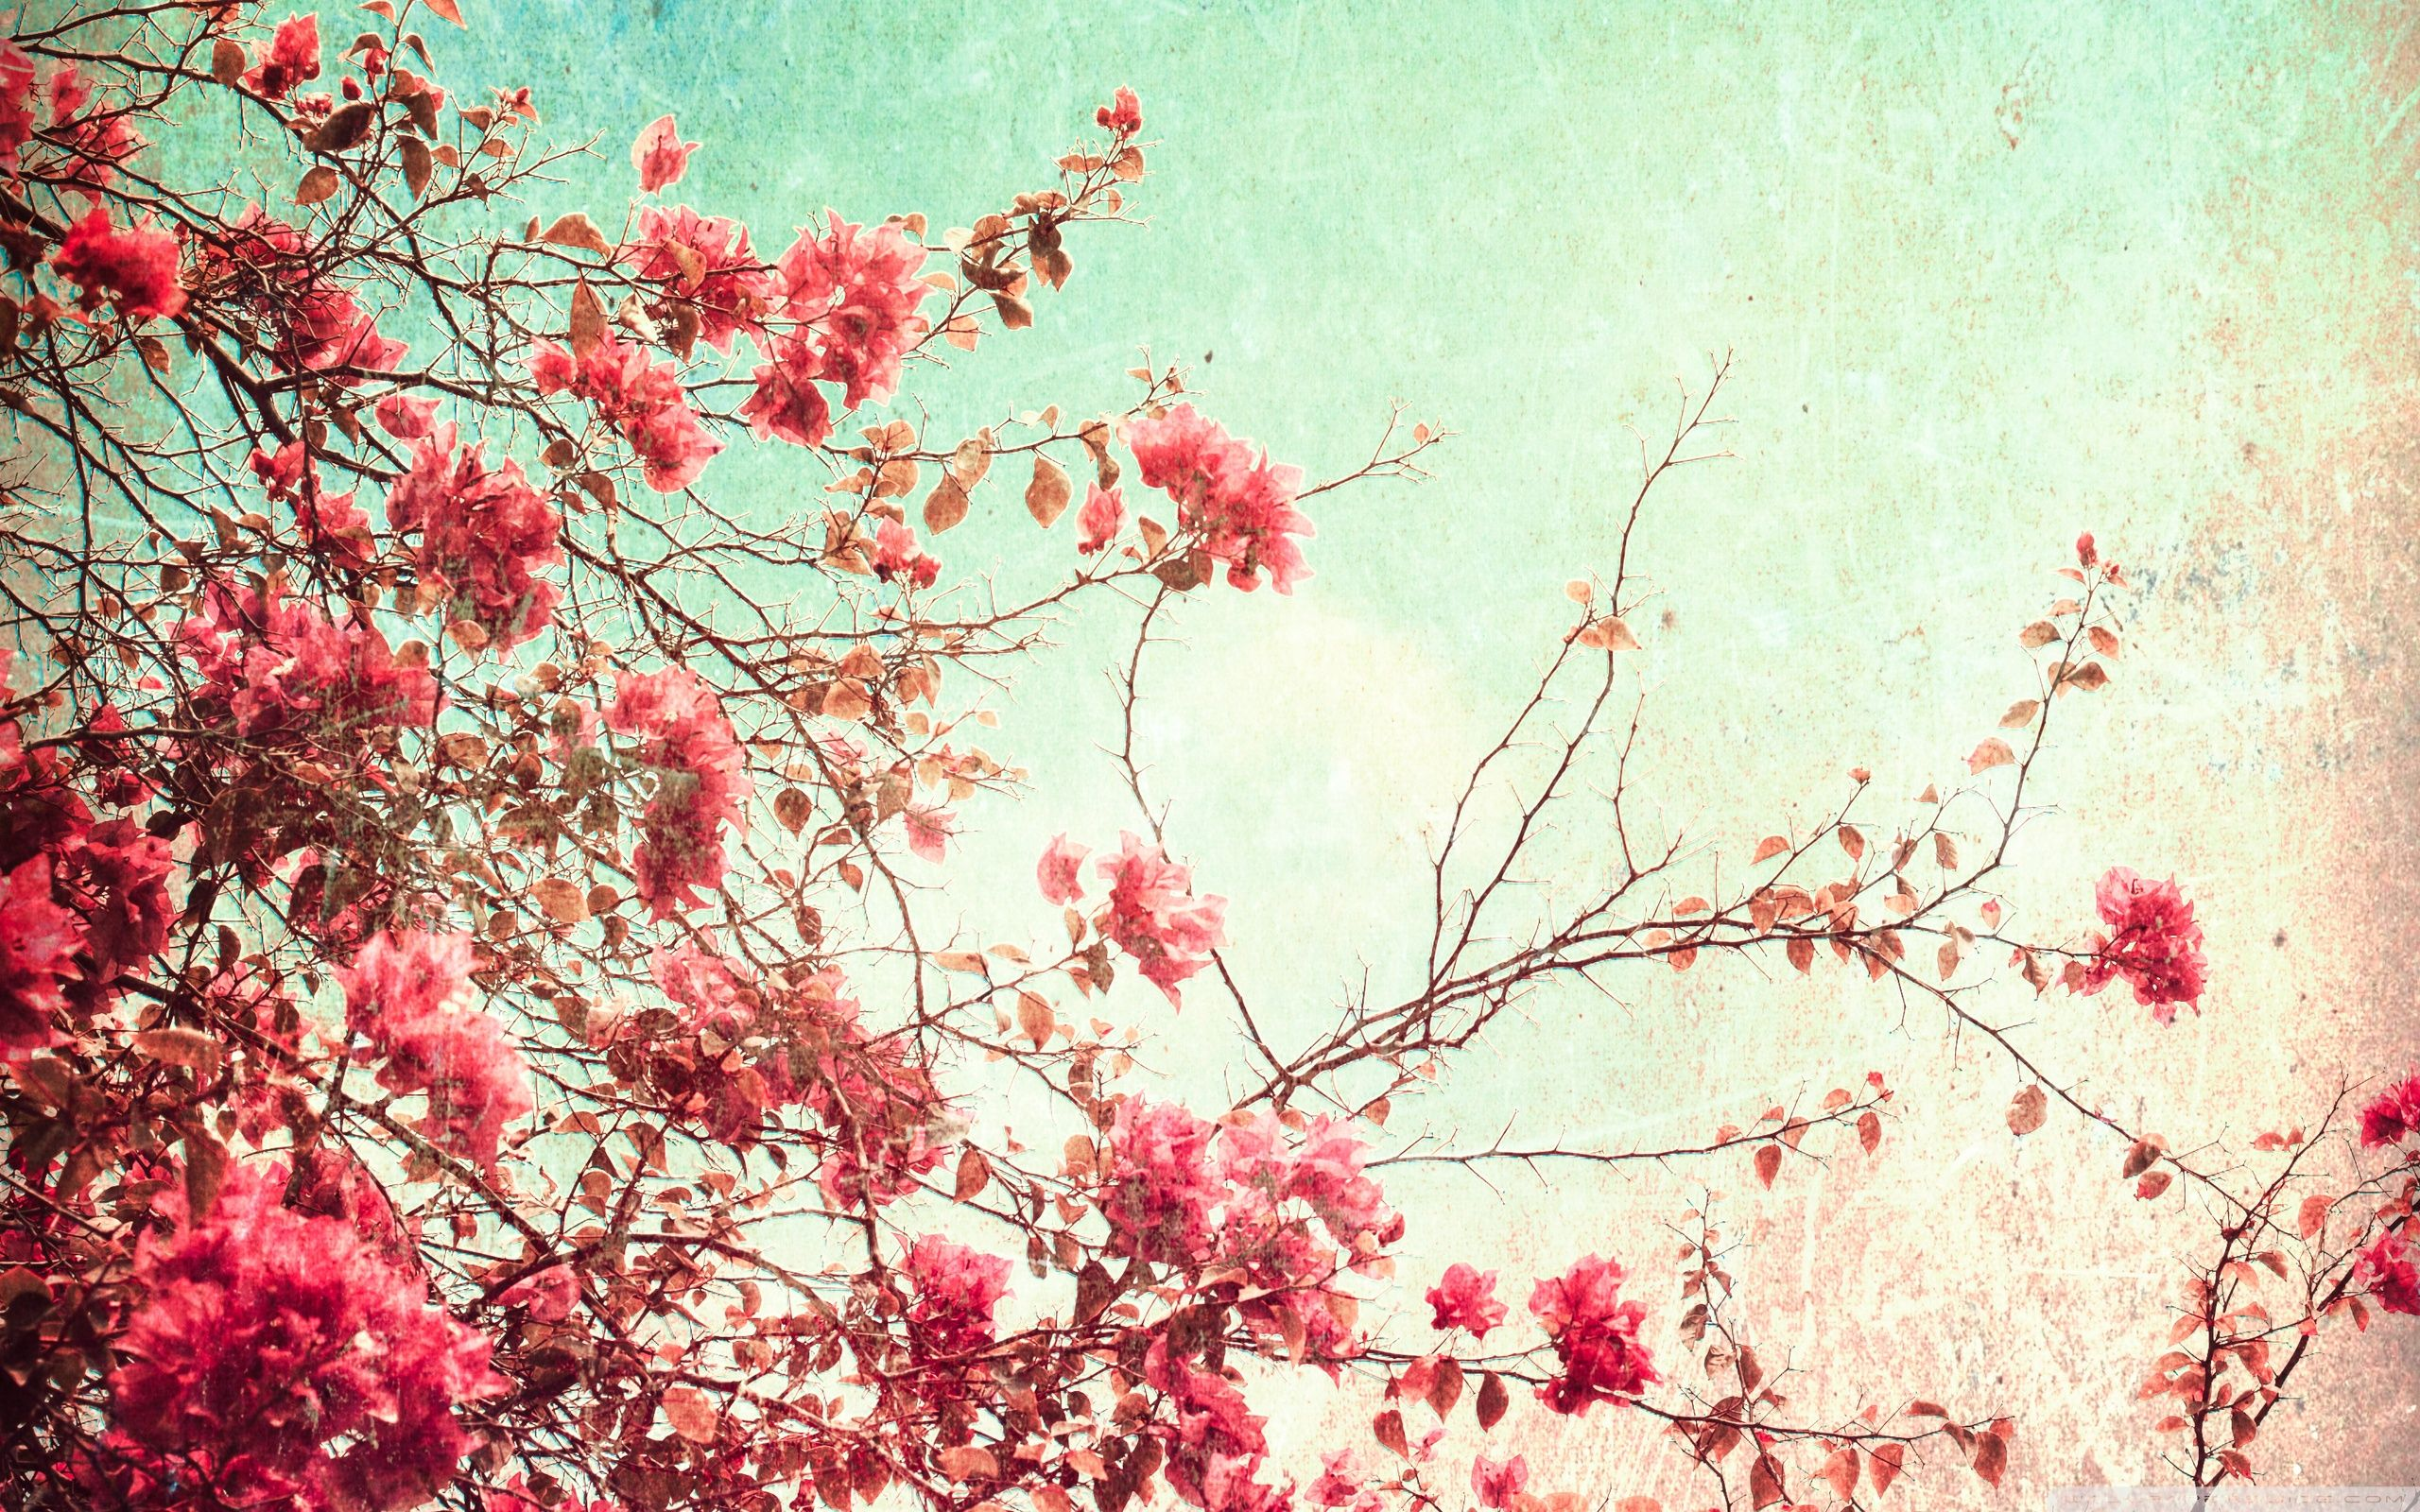 Wallpapers For Desktop Roses Vintage Vintage Flowers Wallpaper